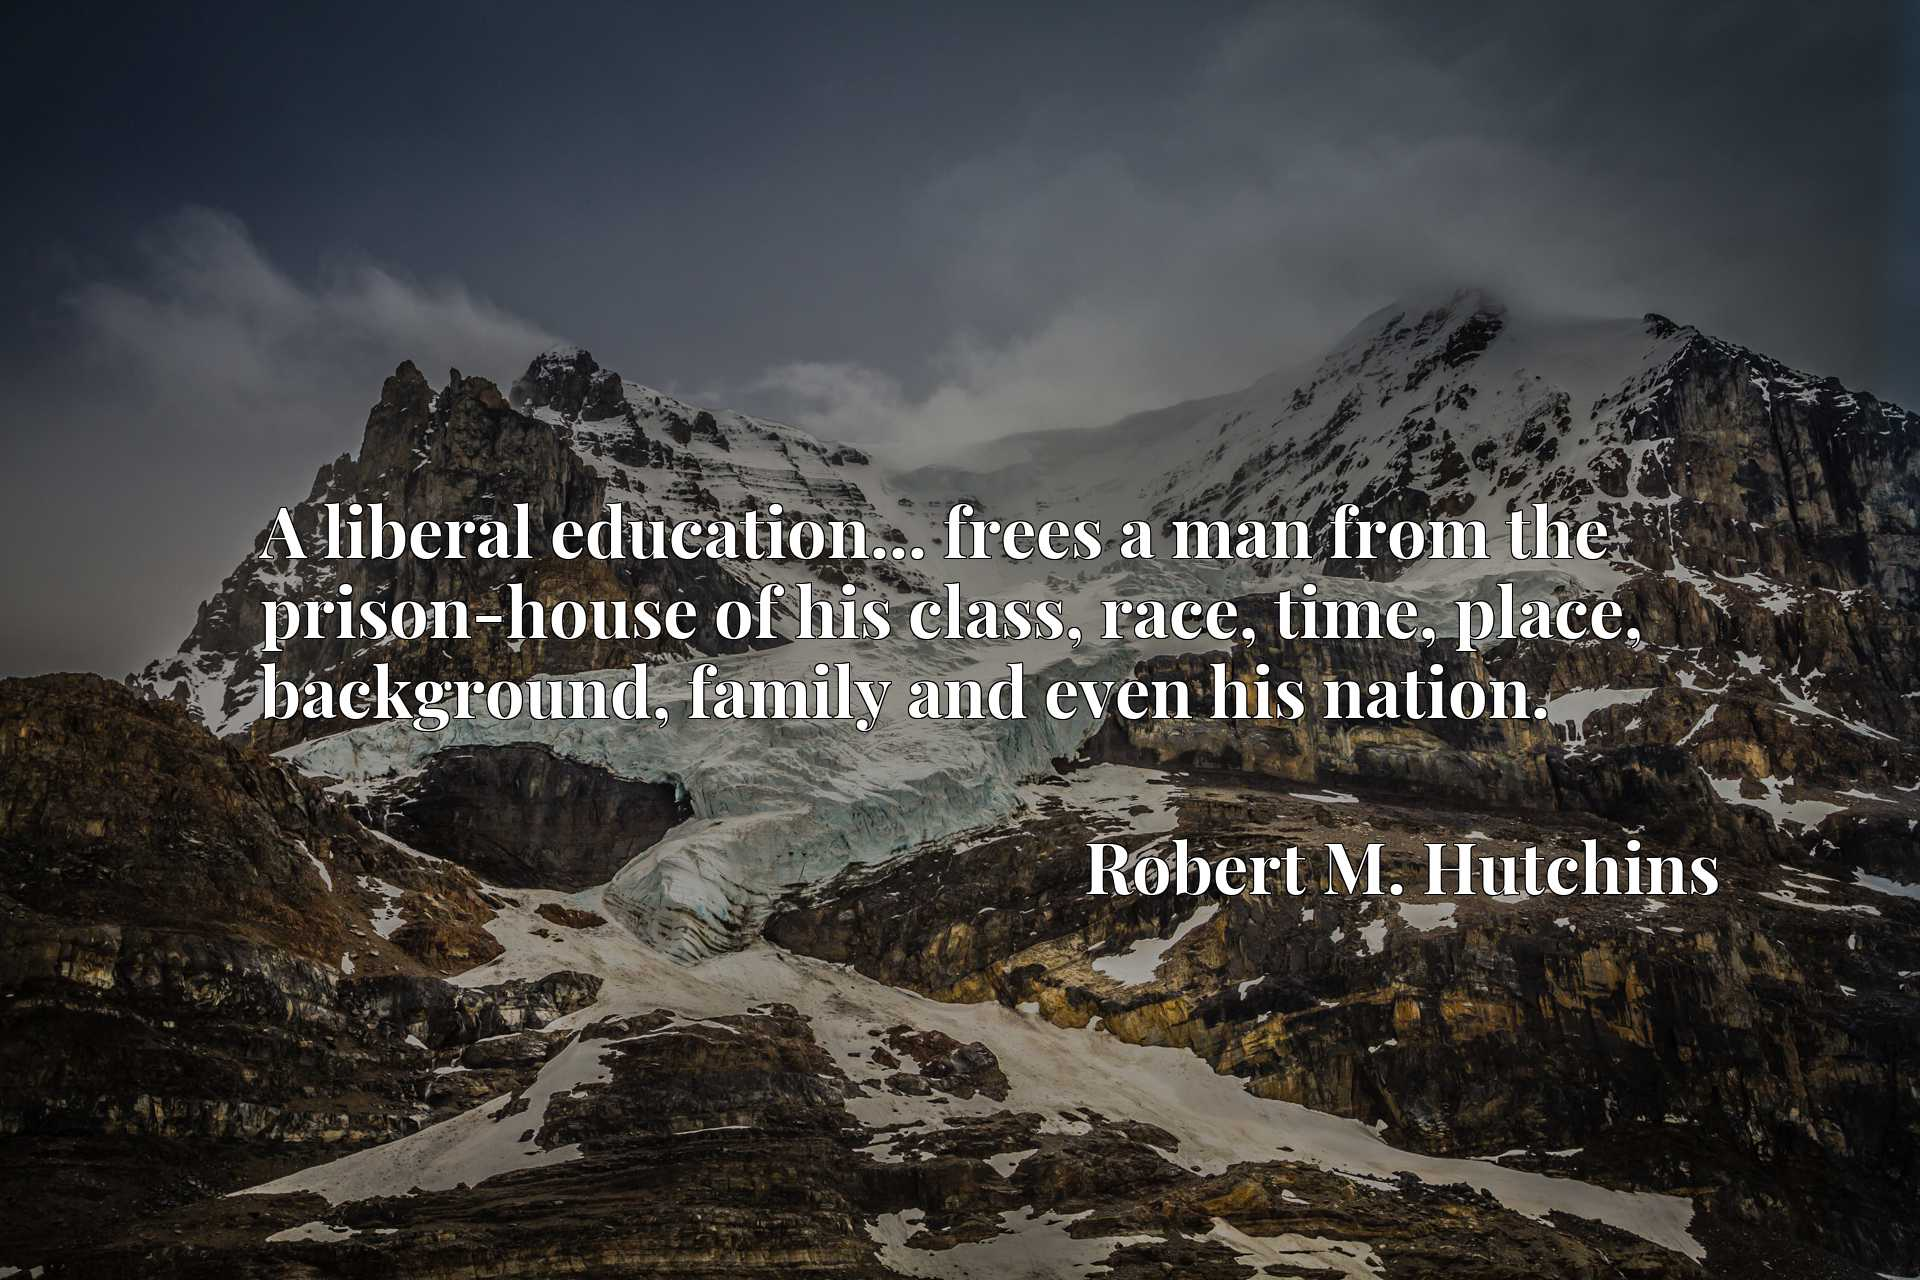 A liberal education... frees a man from the prison-house of his class, race, time, place, background, family and even his nation.